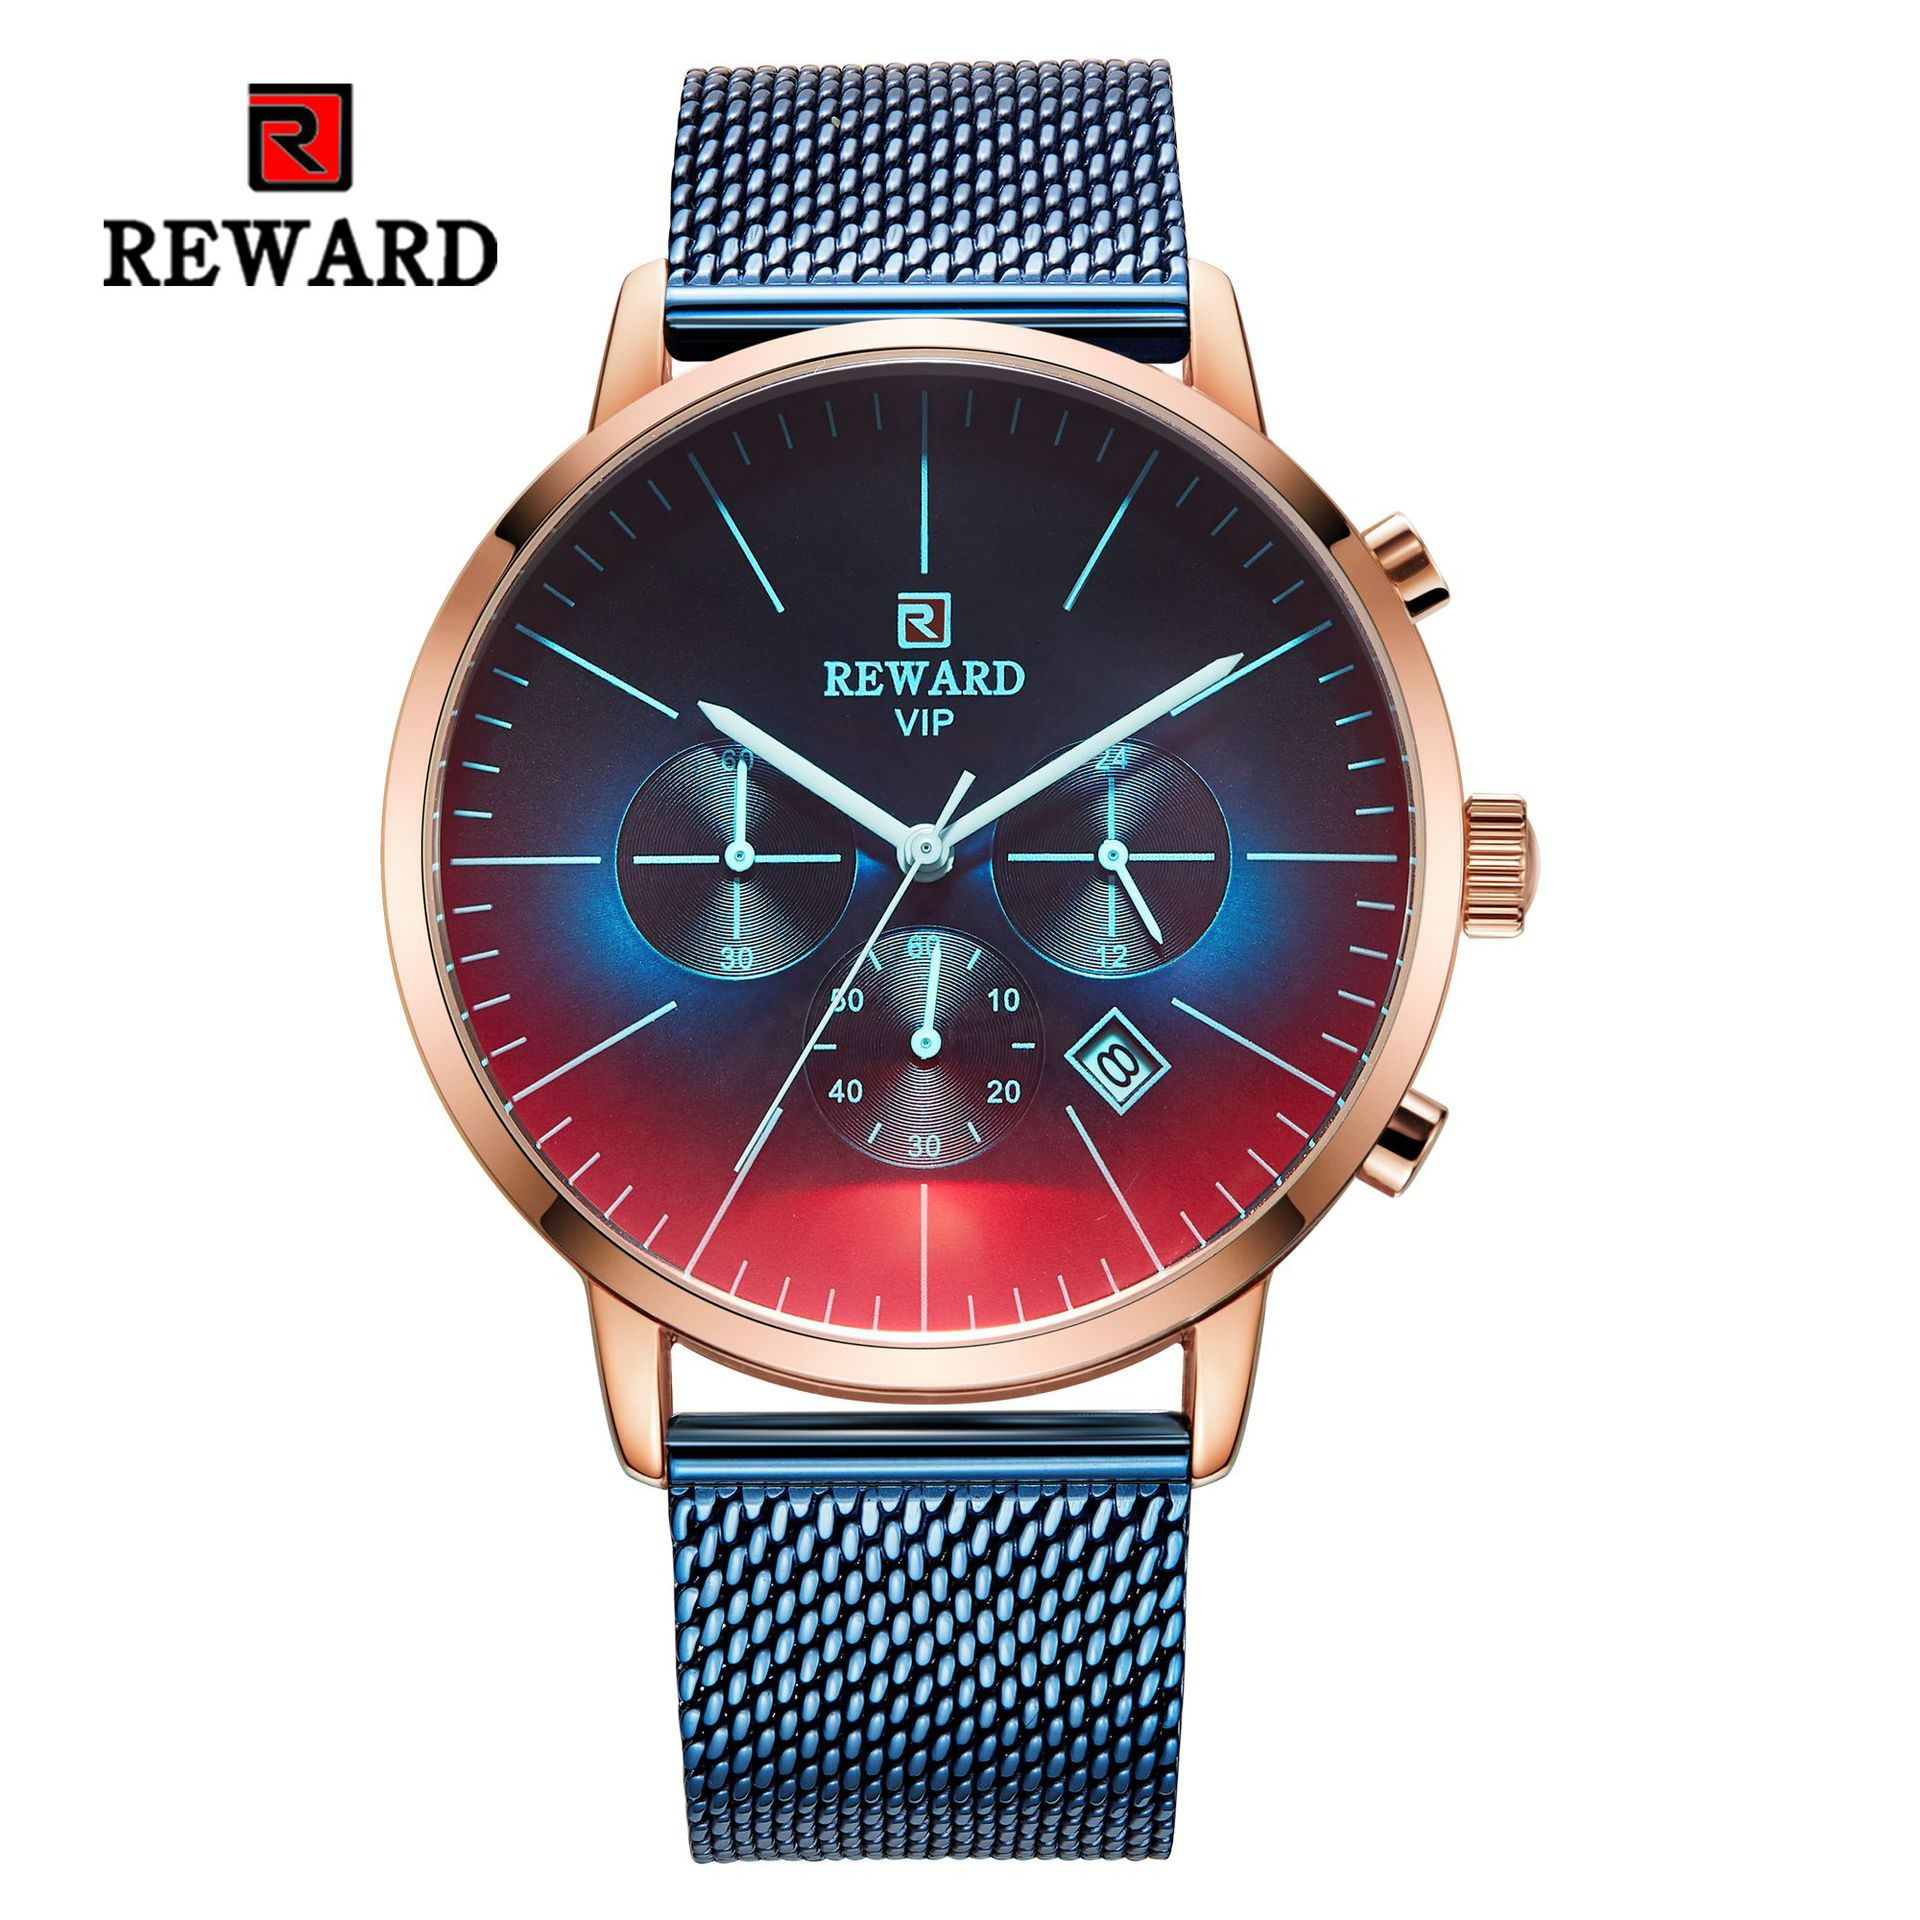 REWARD Military Sport Fashion Men Watch Top Quality Luxury Quartz Watches Clock Stainless Band Watch JD RD82004M in Quartz Watches from Watches